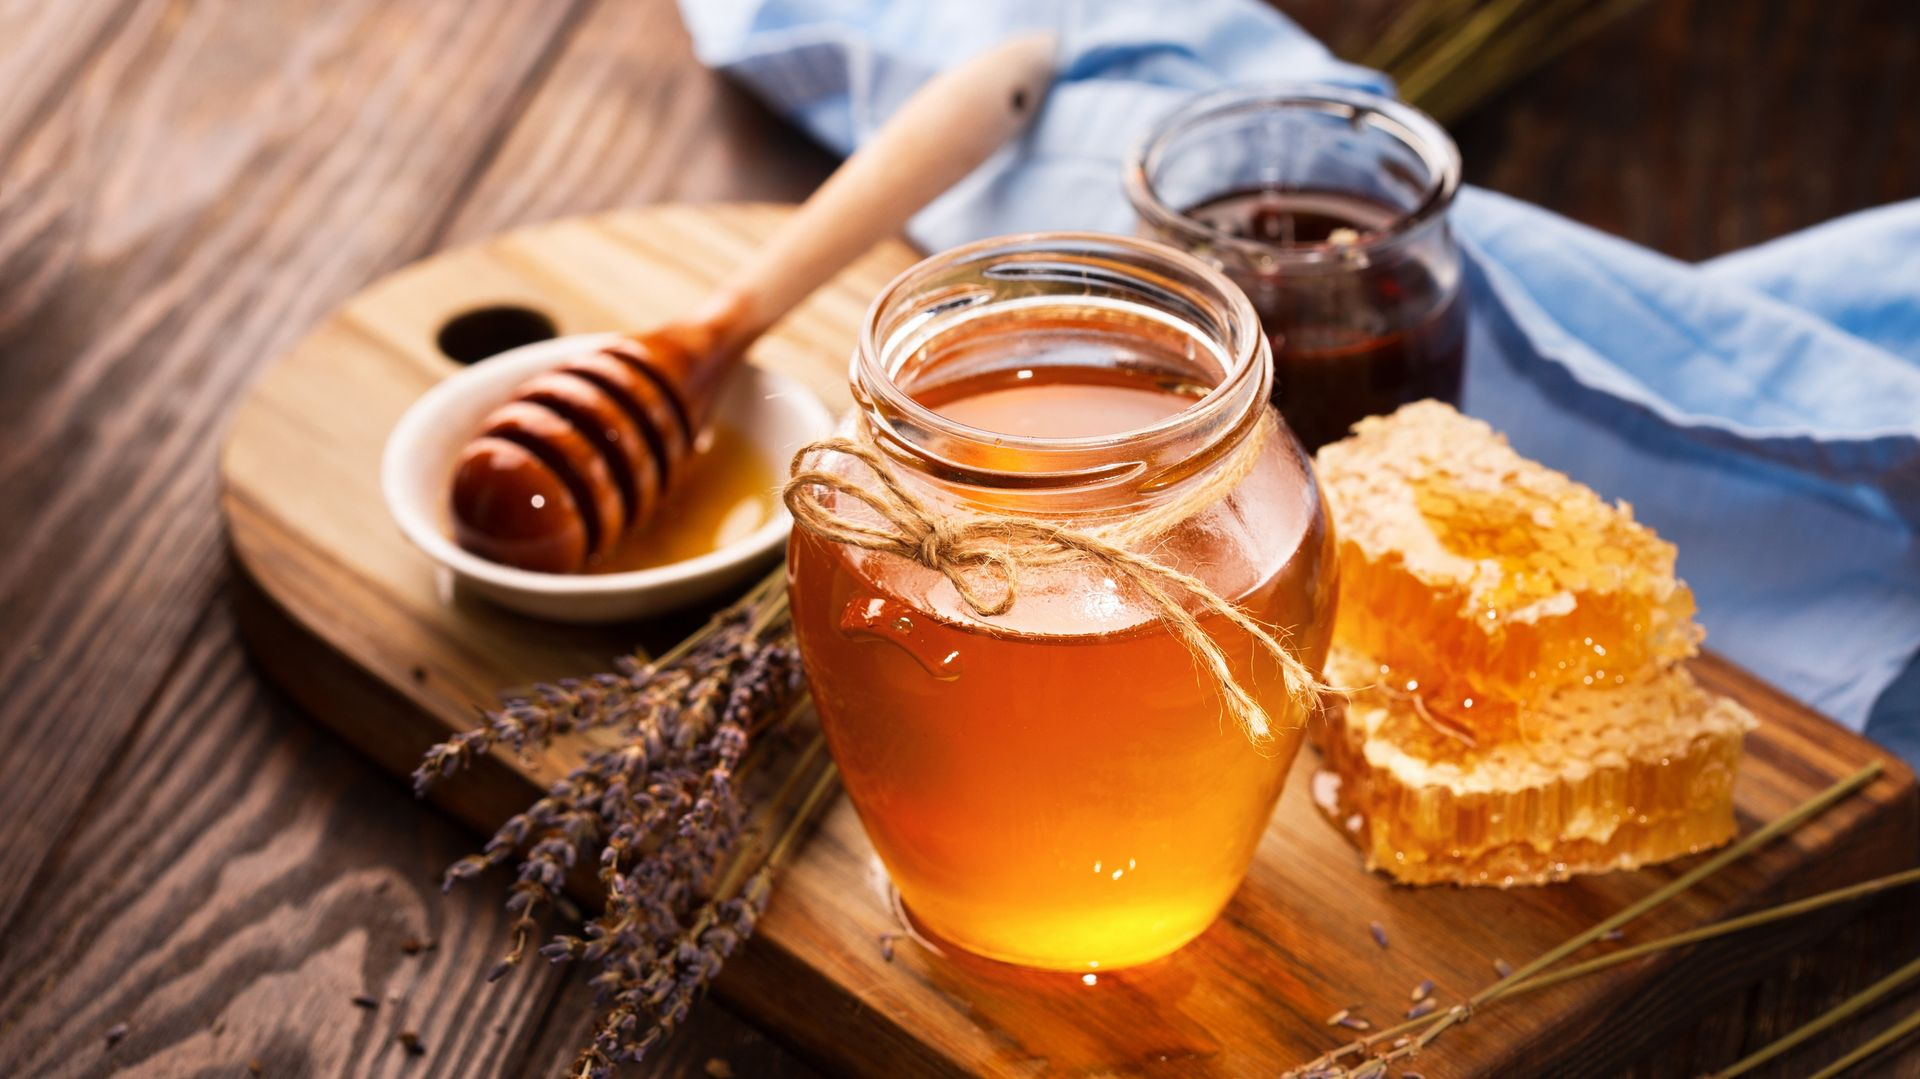 Honey from our hives